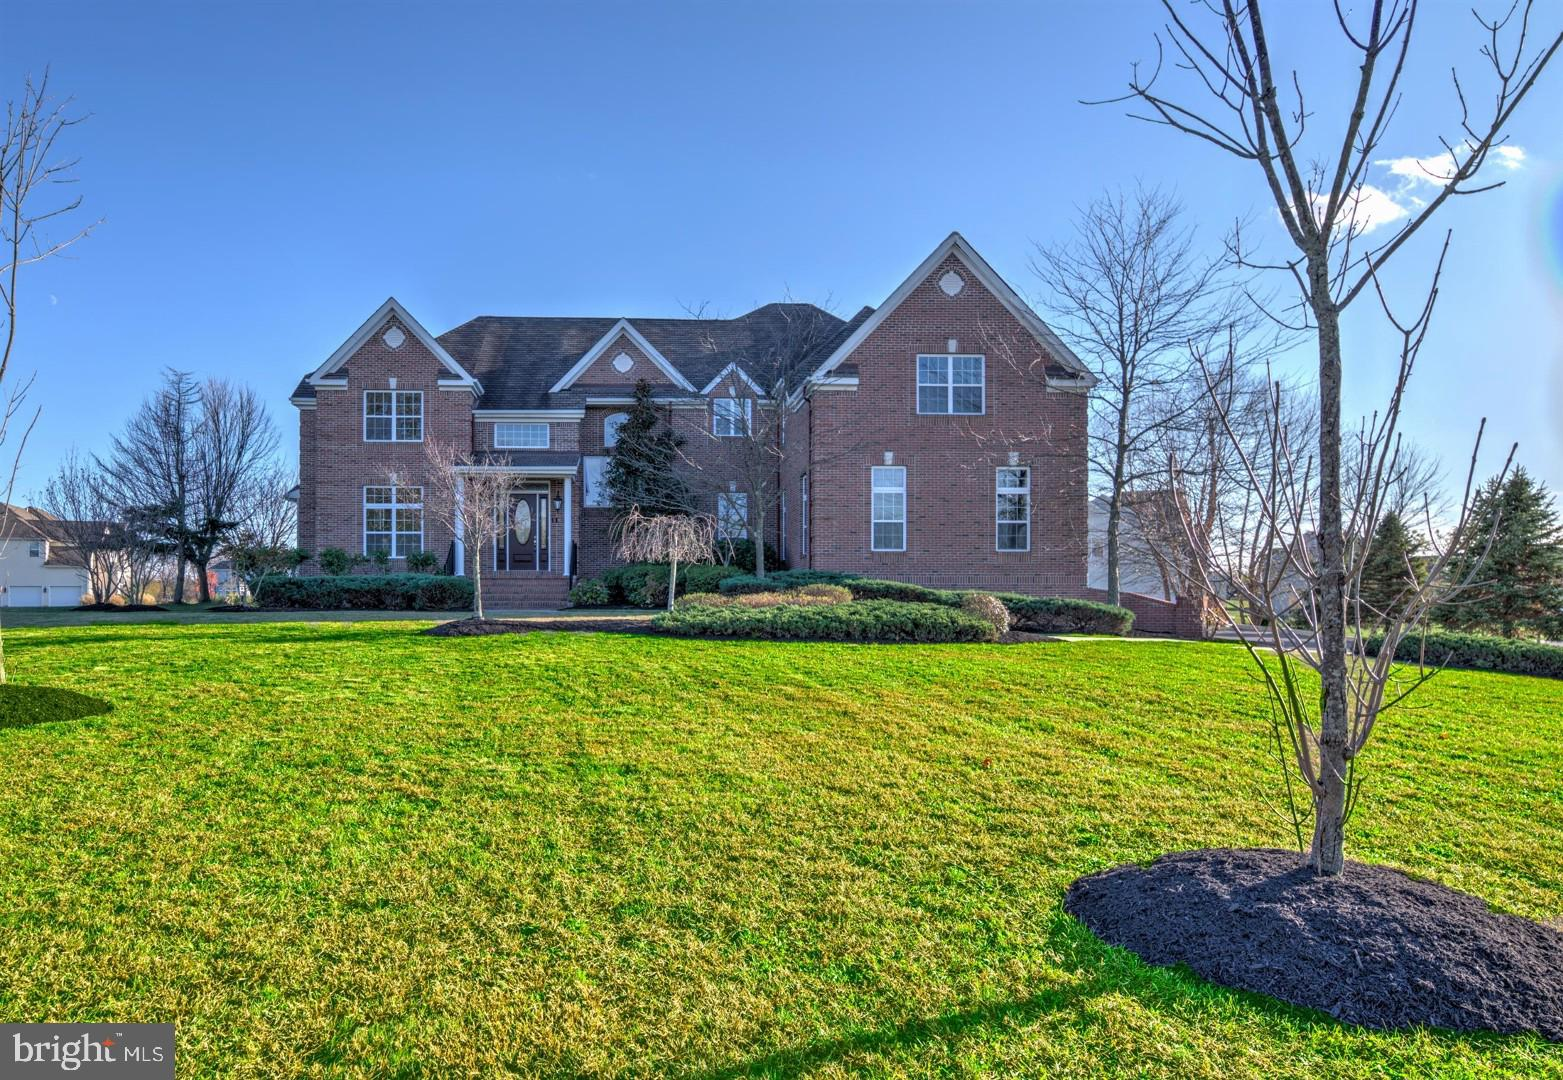 11 BELMONT CIRCLE, COLUMBUS, NJ 08022